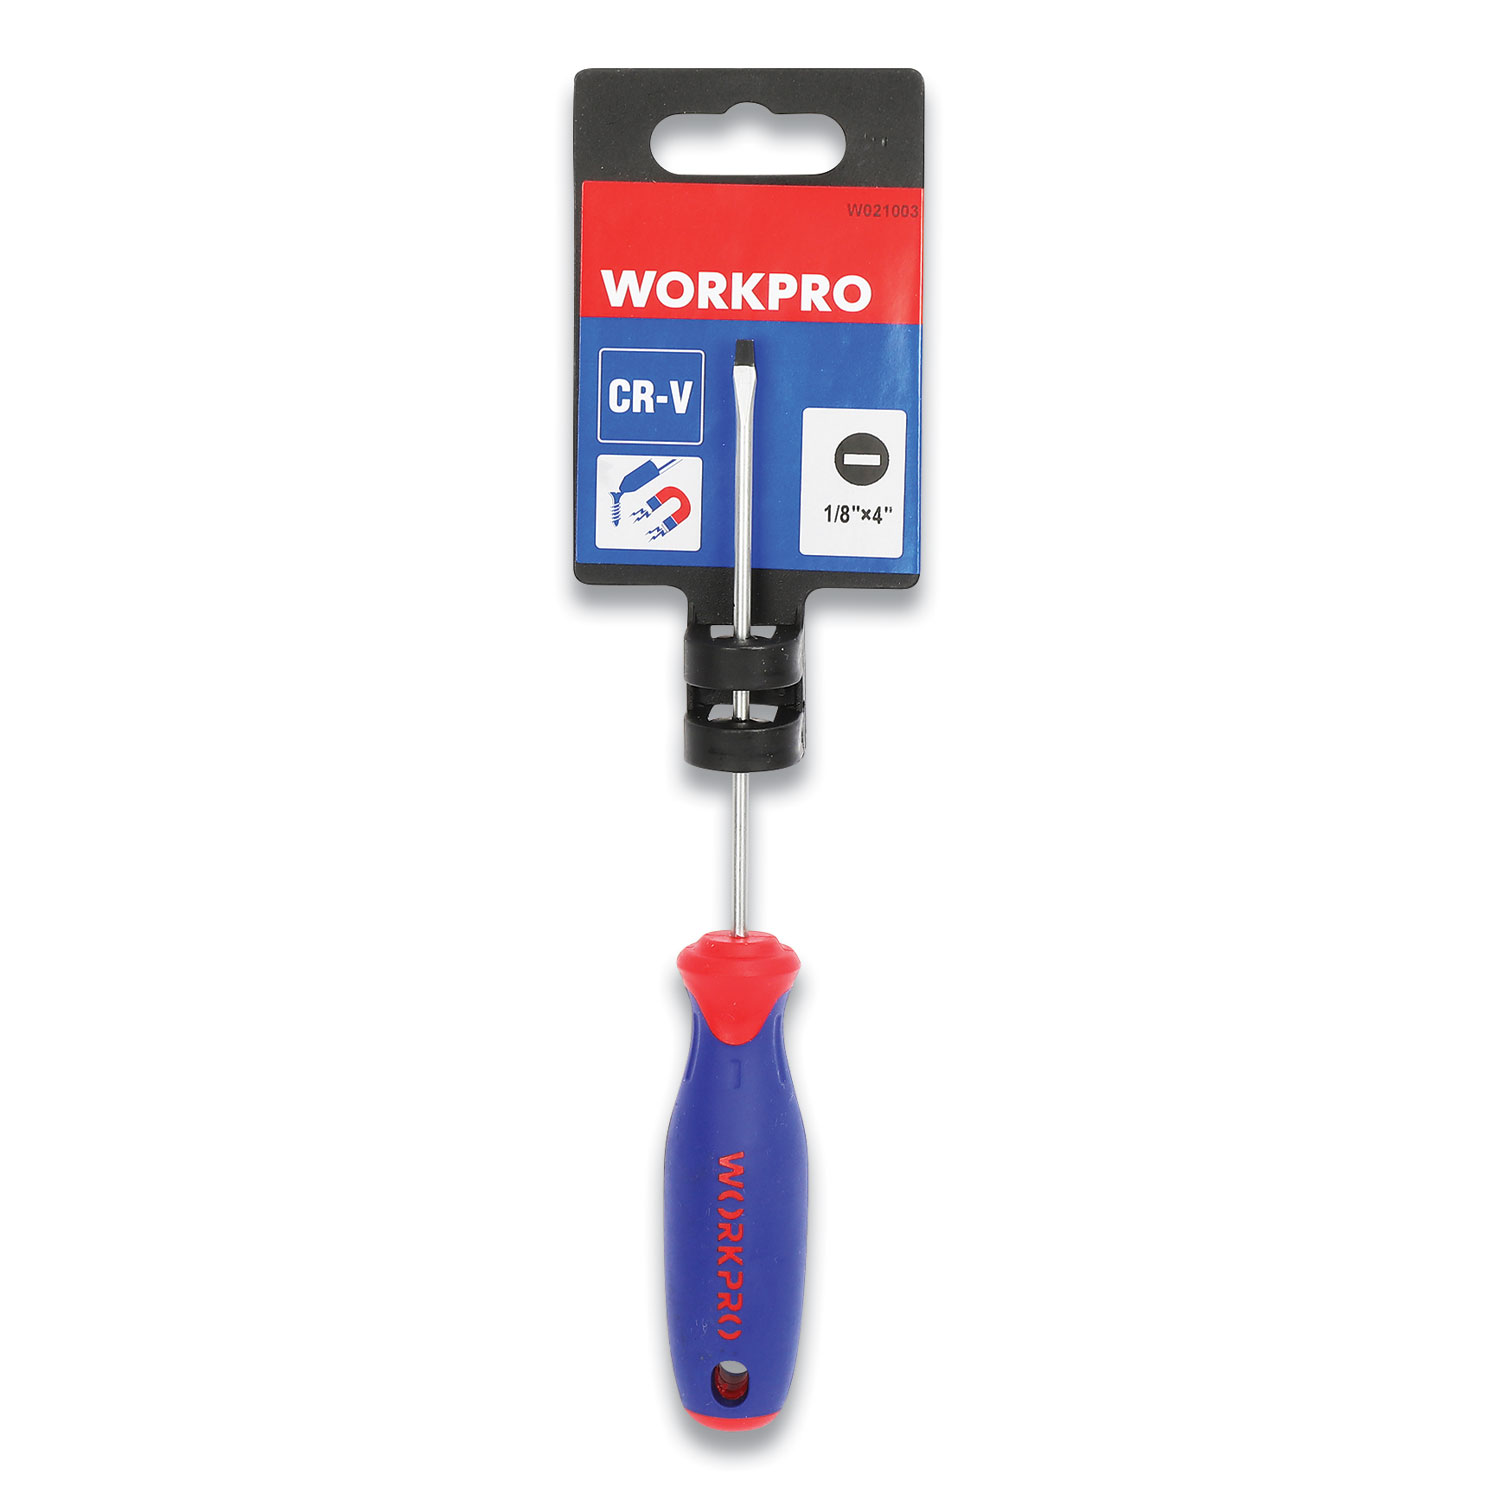 Workpro® Straight-Handle Cushion-Grip Screwdriver, 1/8 Slotted Tip, 4 Shaft